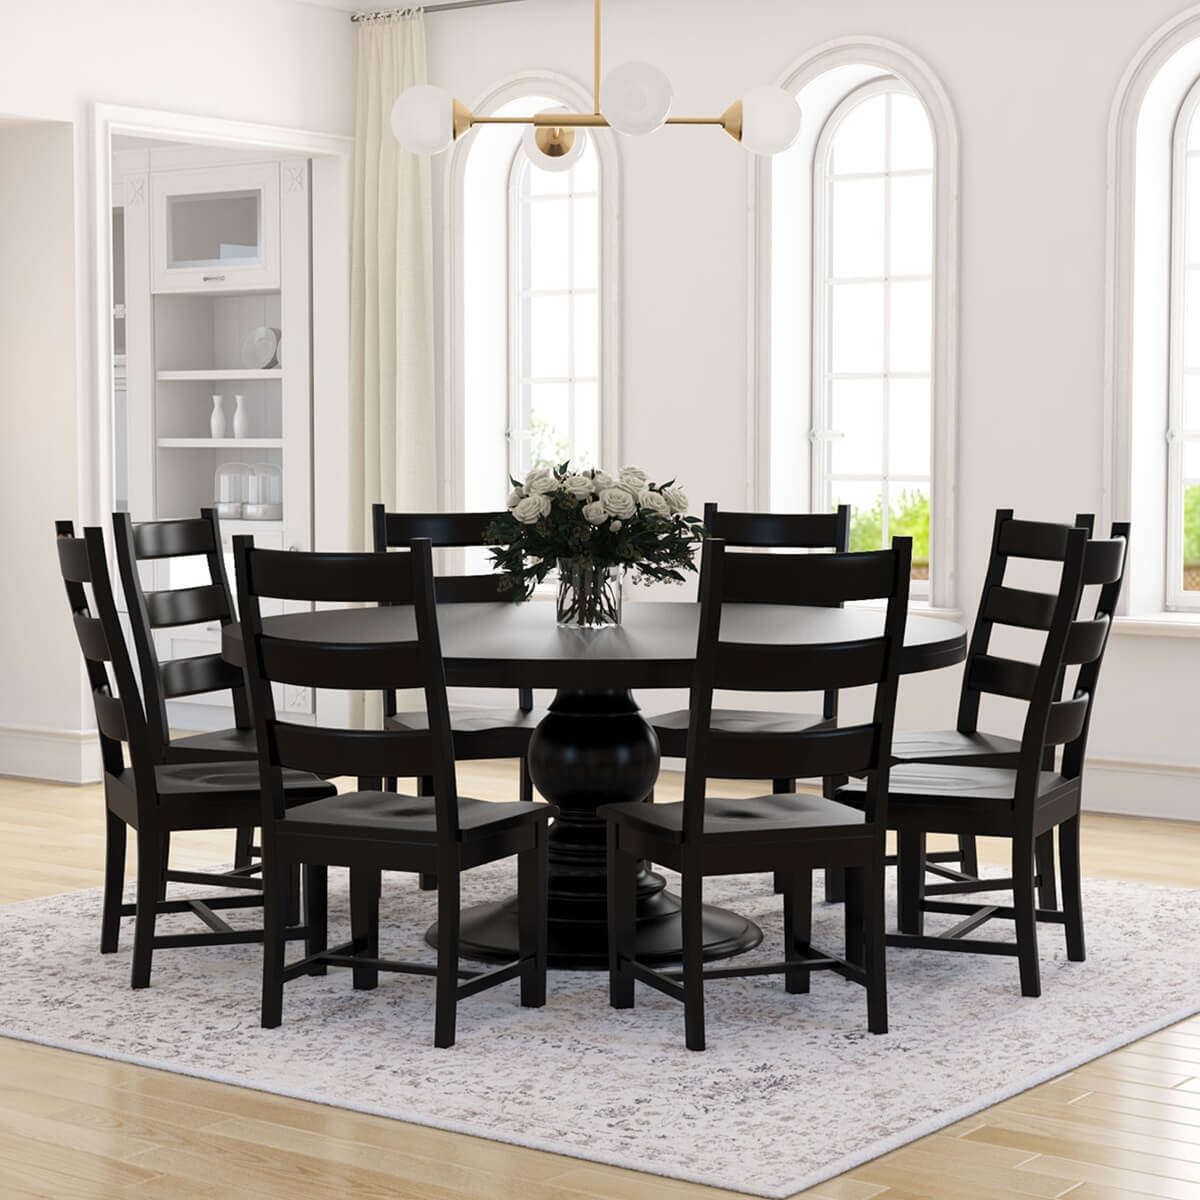 Nottingham rustic solid wood black round dining room table set for Black dining room set